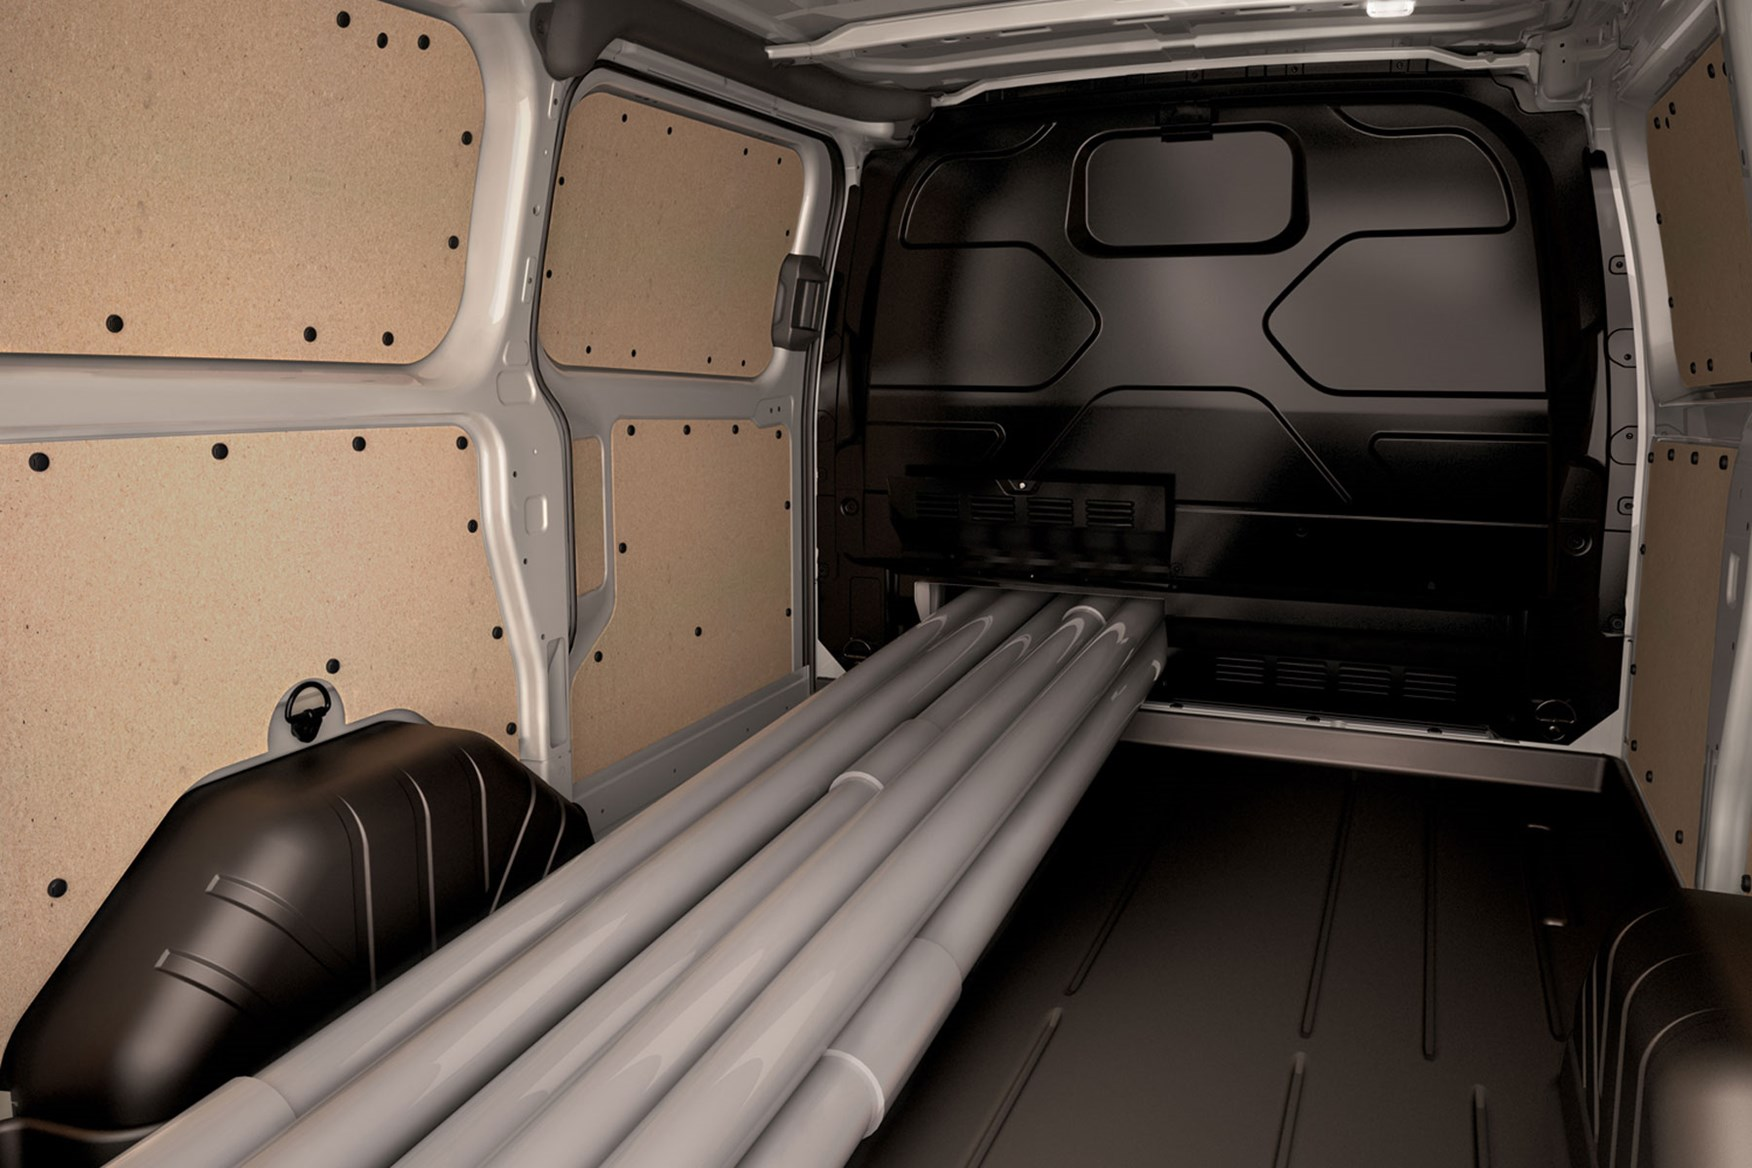 Ford Transit Custom dimensions - load through bulkhead